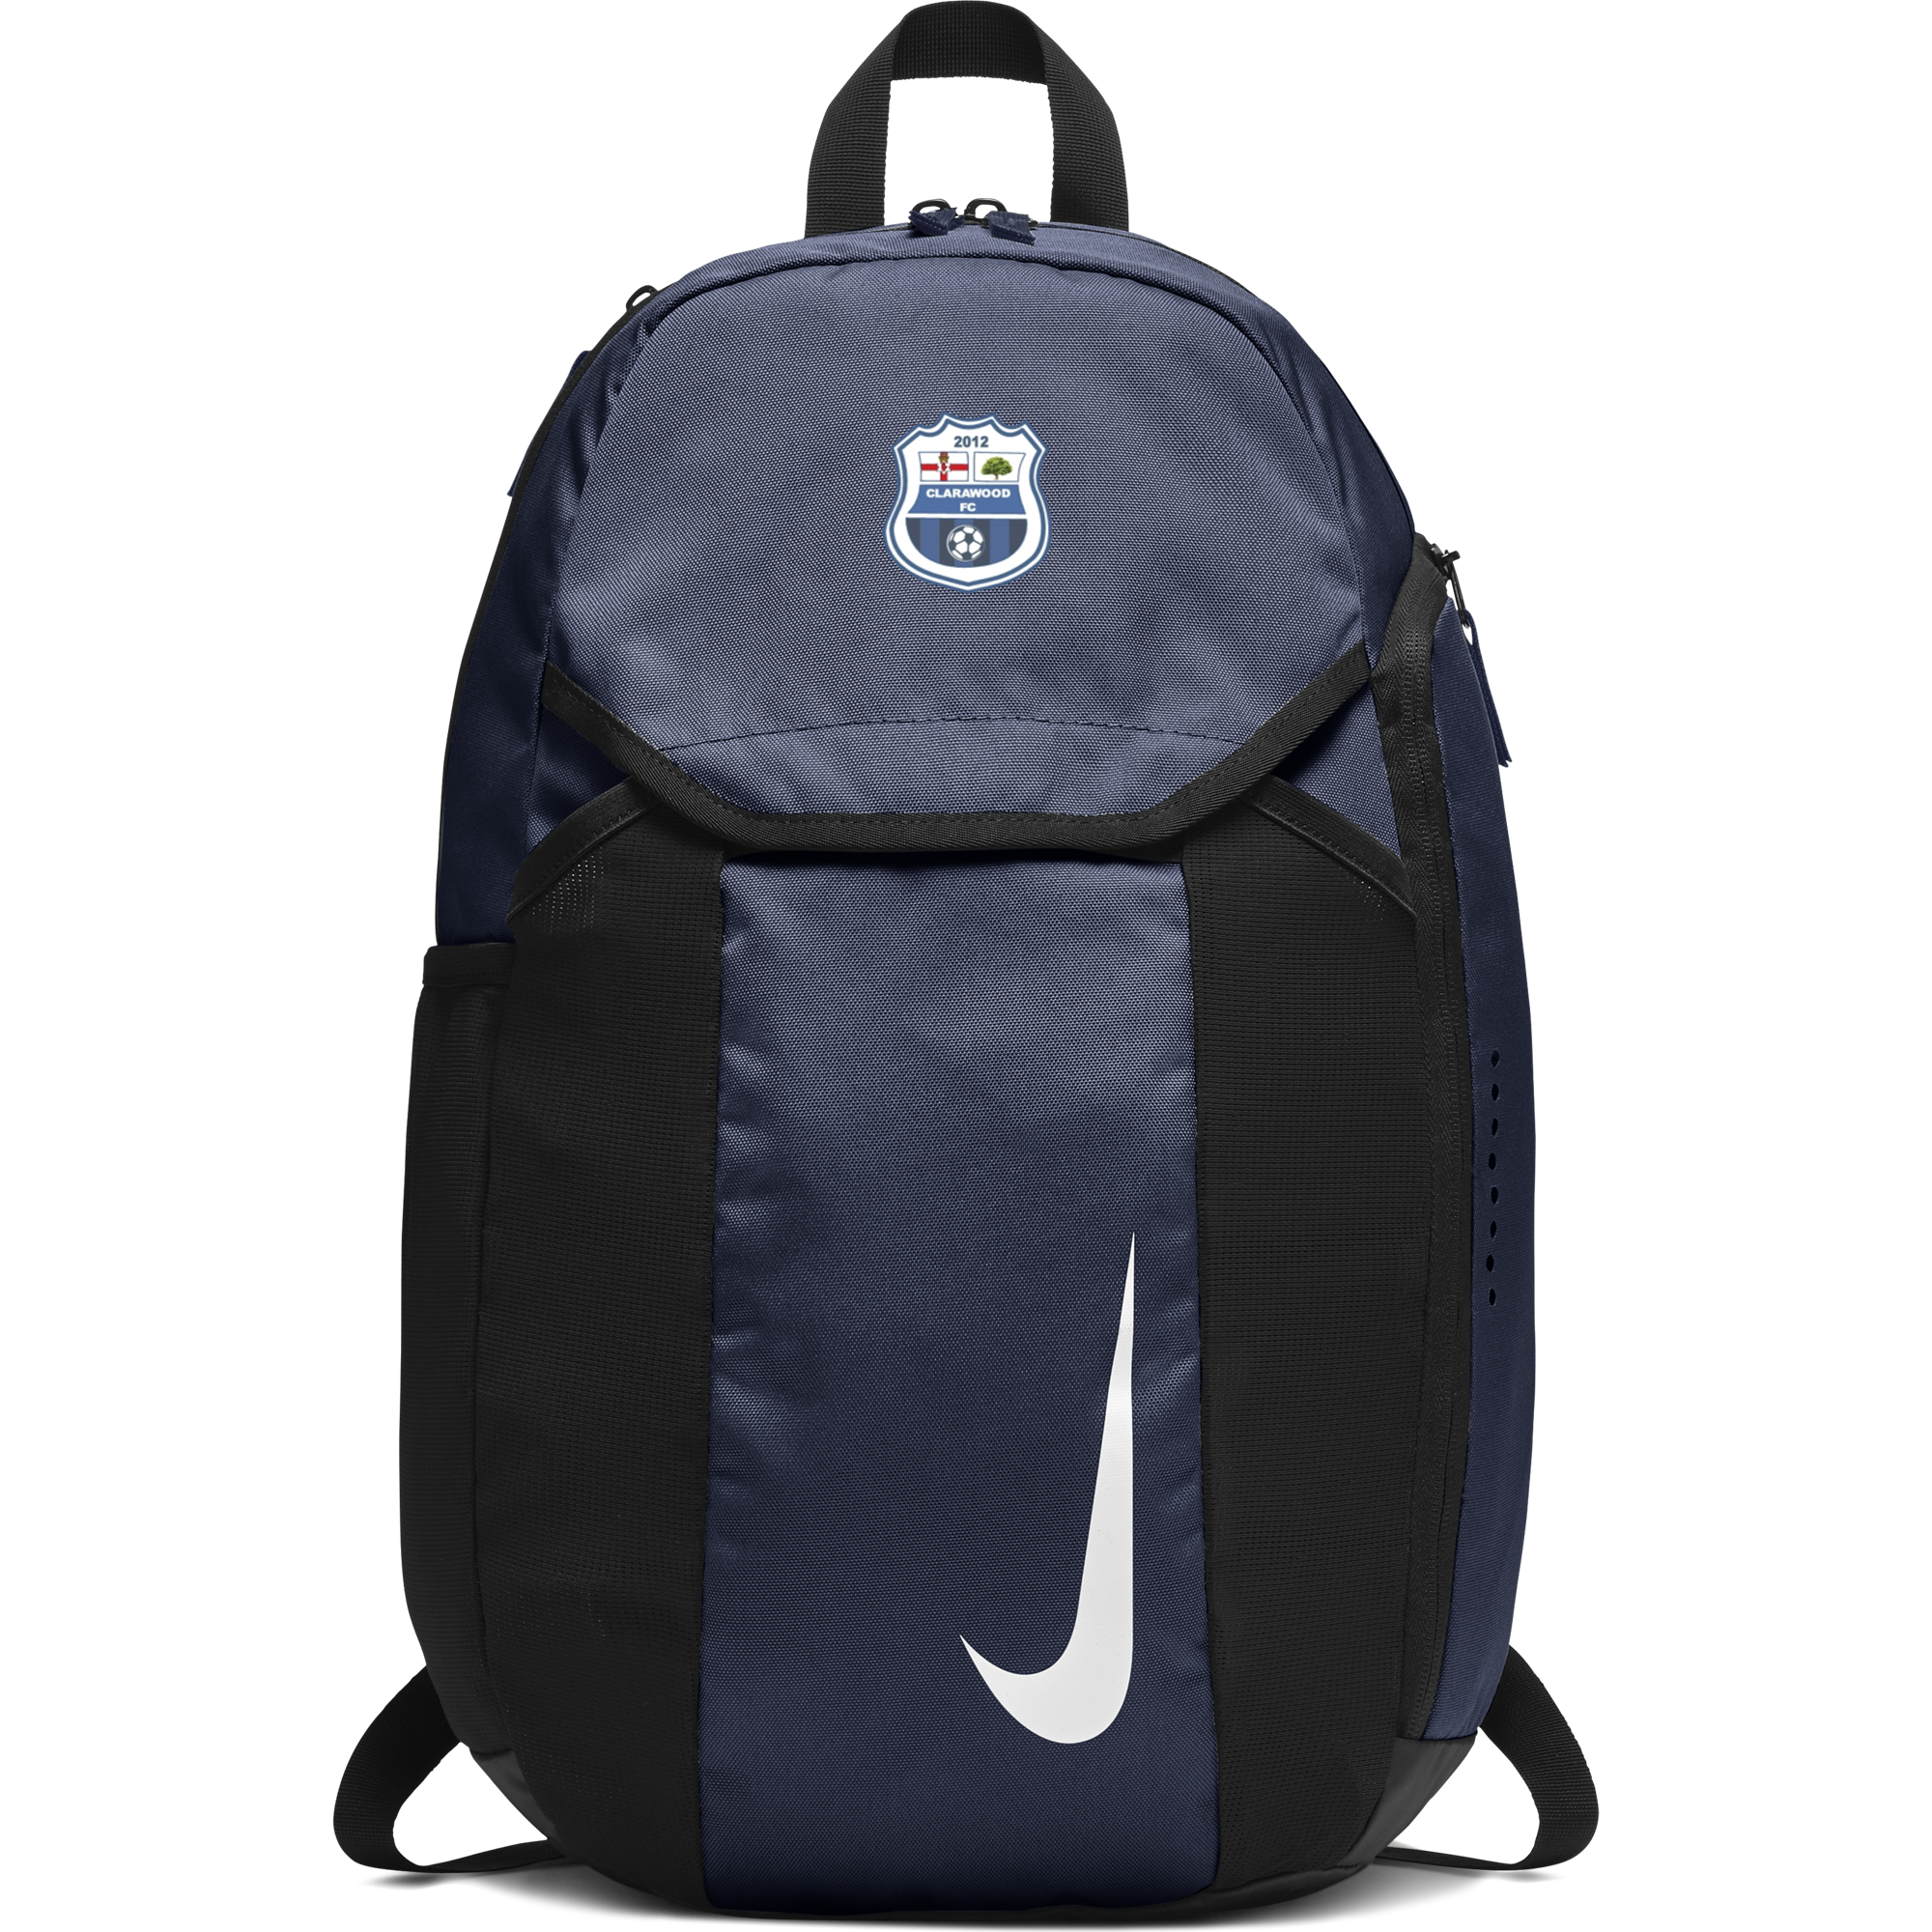 clarawood fc backpack 36402 p